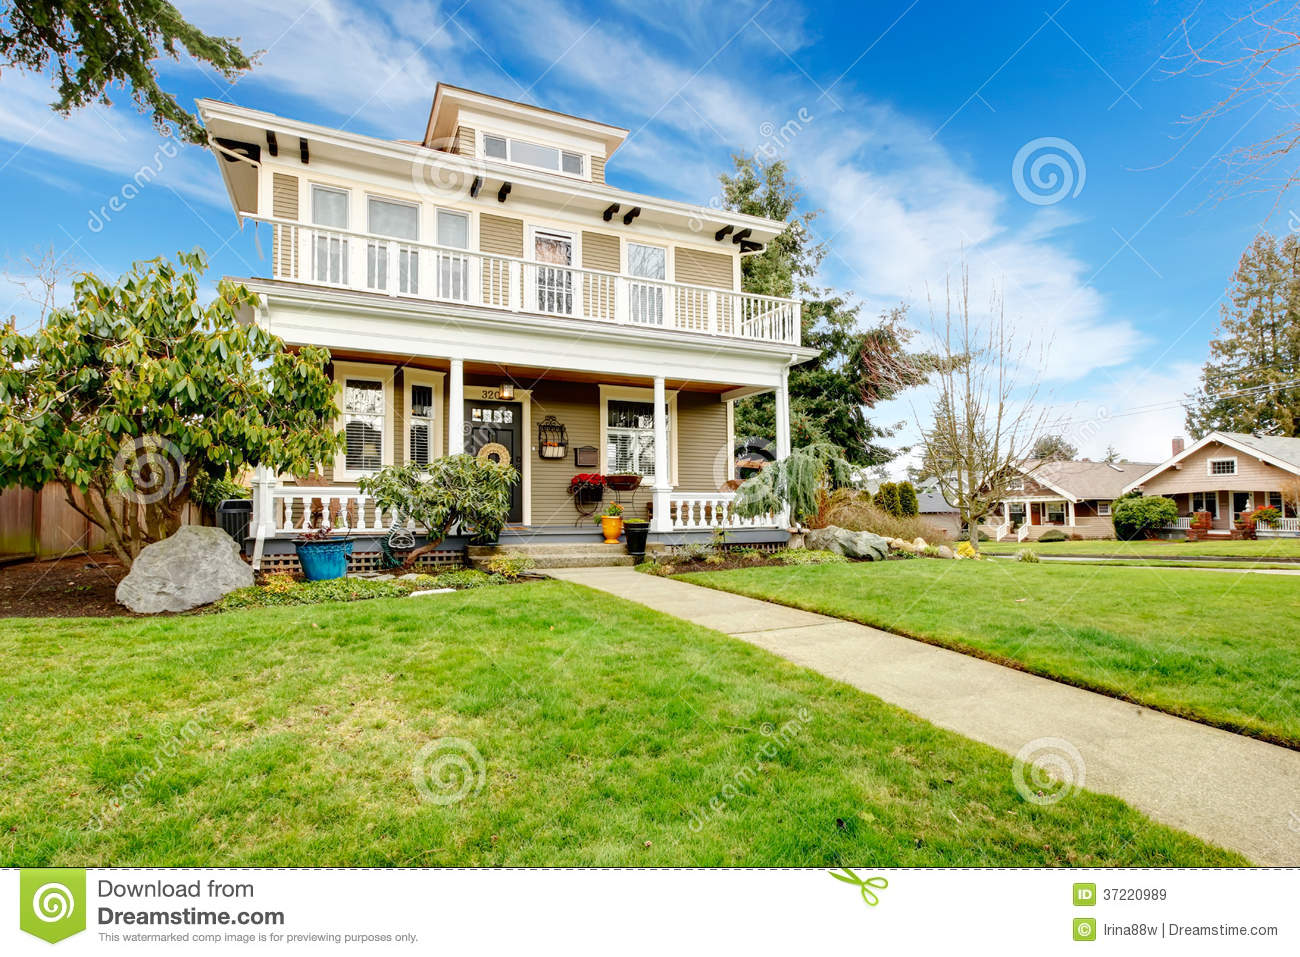 Two story american house with white column porch royalty for 2 story porch columns